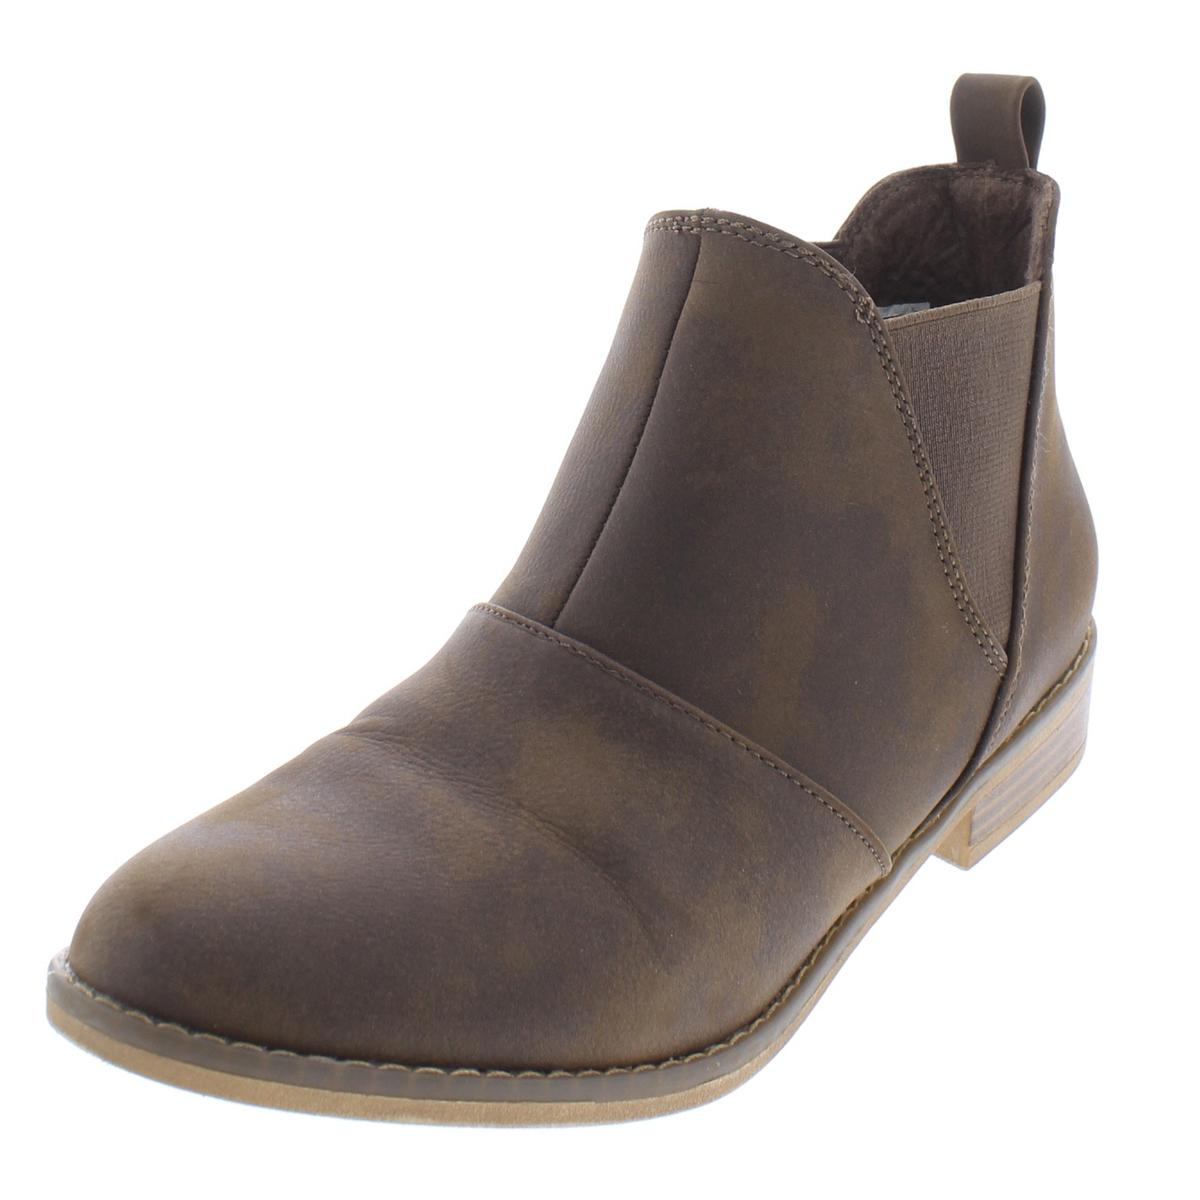 a6f68a47788fc Details about Rocket Dog Womens Maylon Brown Chelsea Boots Shoes 8 Medium  (B,M) BHFO 1868